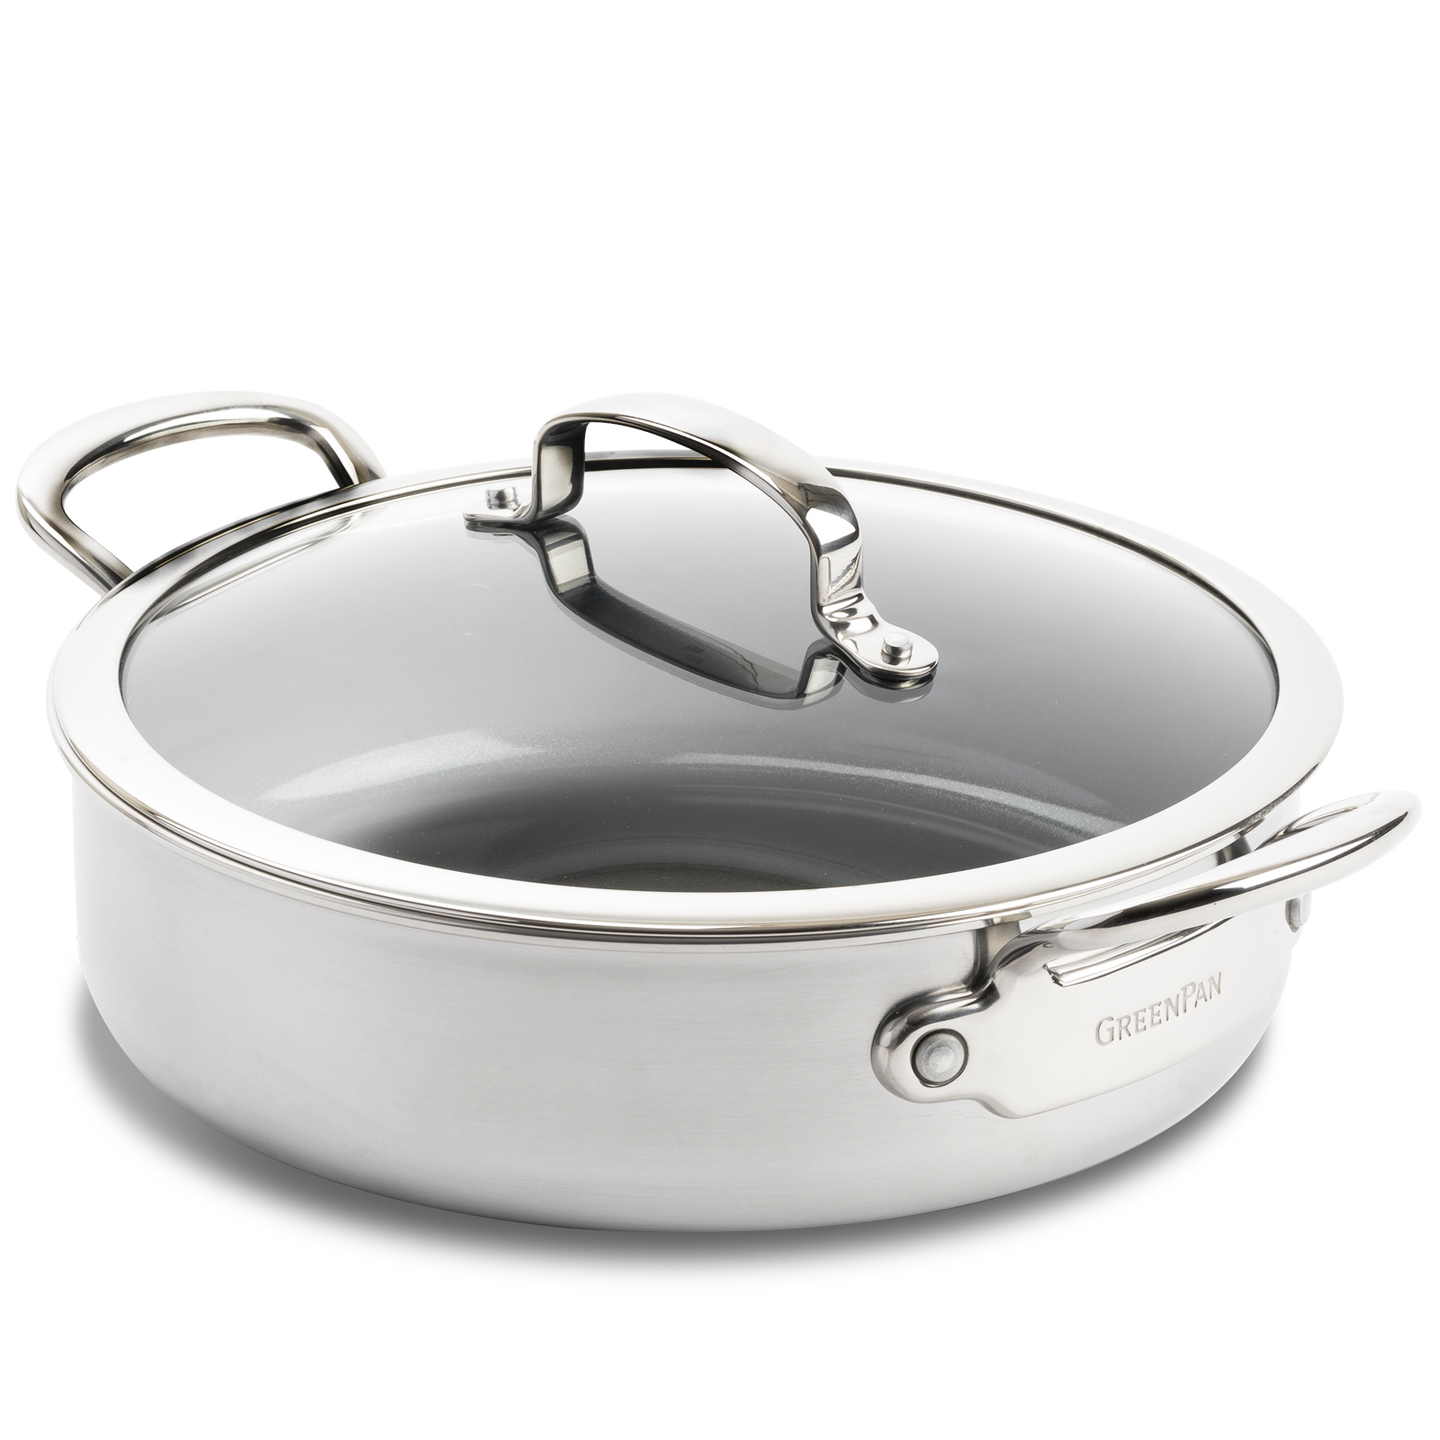 Premiere Shallow Casserole with lid